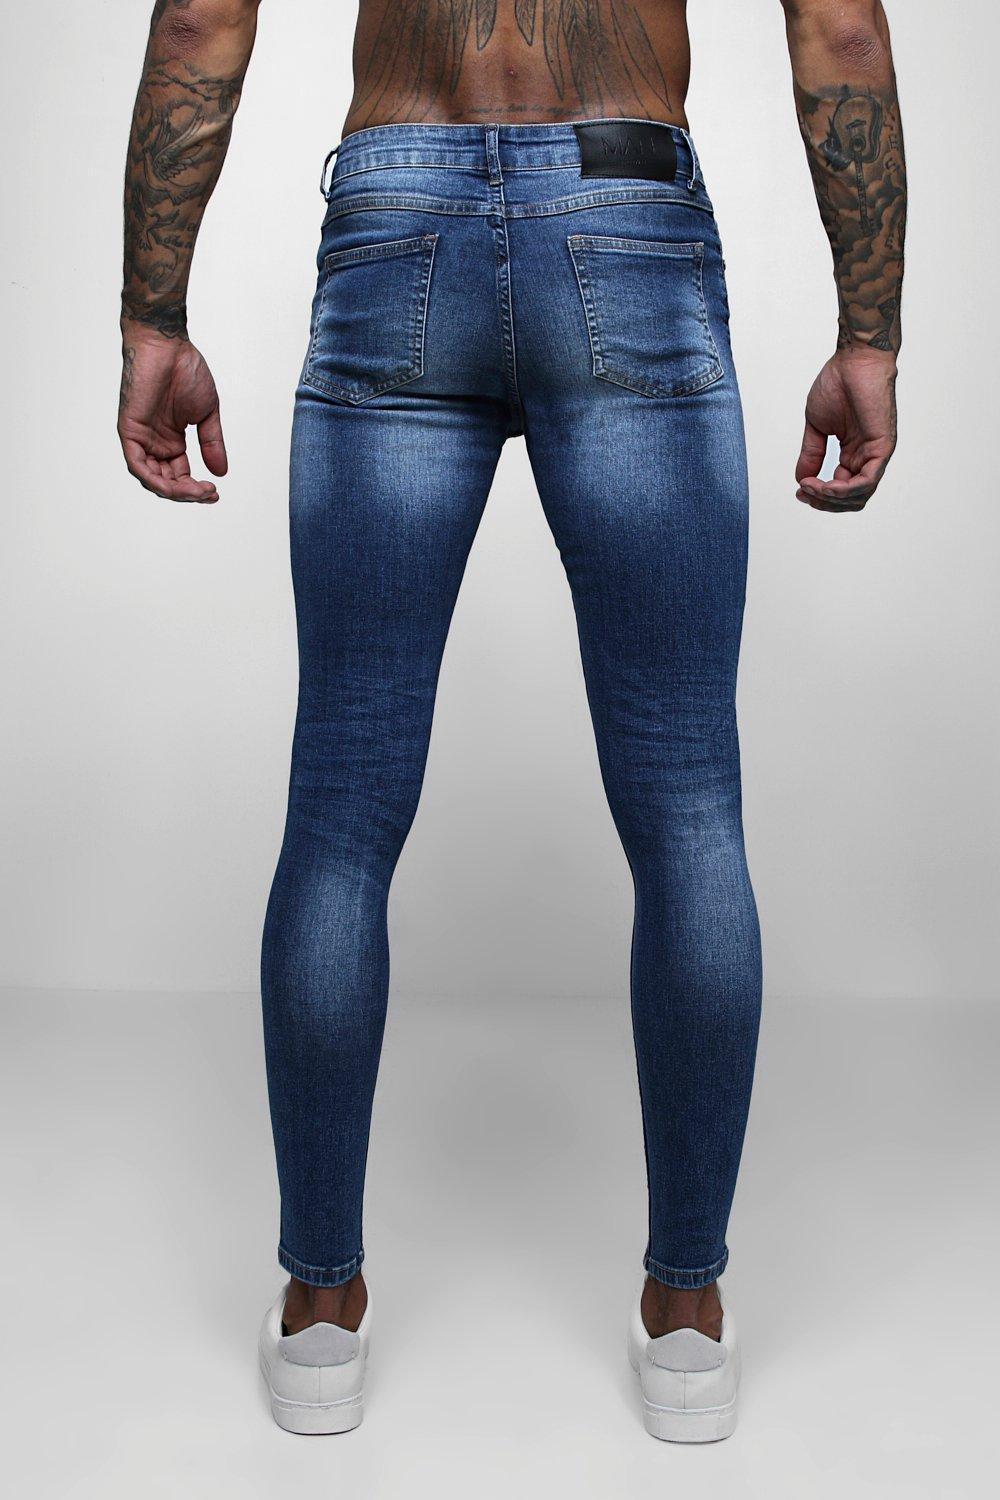 mid Spray Distressed Jeans blue On Skinny Denim Fit THaqxOYHw